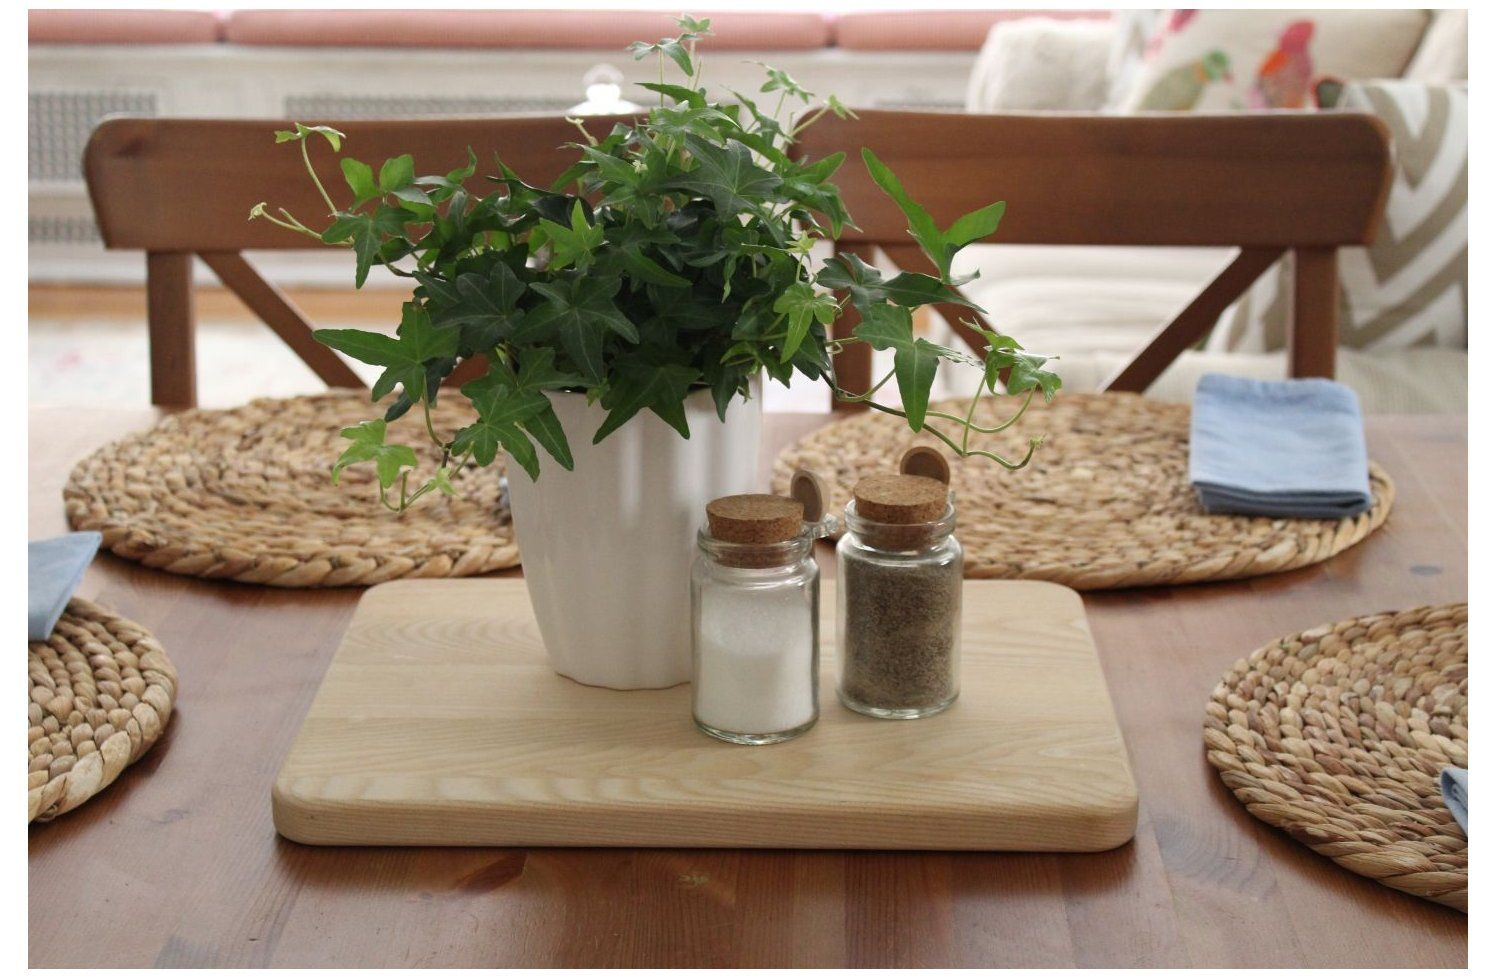 Dining Room Table Centerpiece Ideas Center Pieces Everyday Dinin In 2021 Kitchen Table Decor Everyday Kitchen Table Centerpiece Dining Table Decor Centerpiece